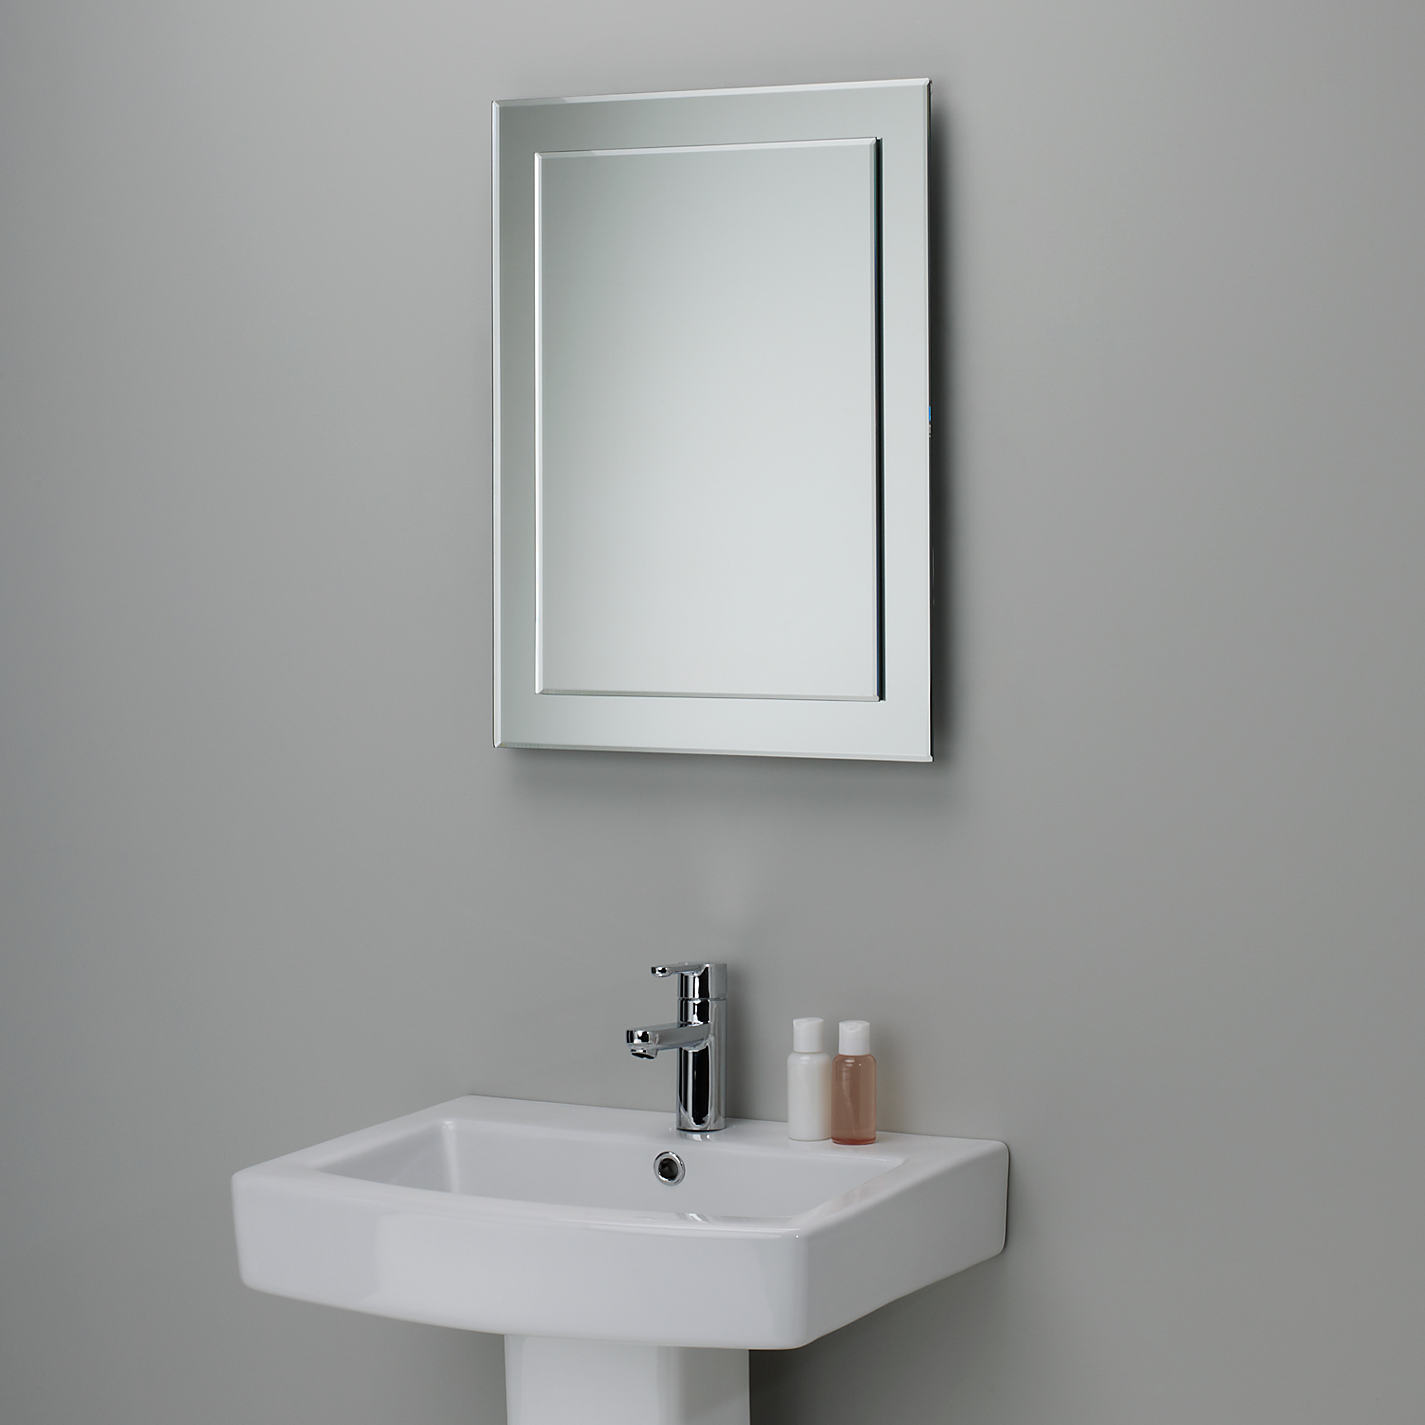 Mirrors But Everyone Want To Buy Mirror For Their Washroom Either For Making Their Washroom Well Organized And Also Lavish So There Are Differentiation